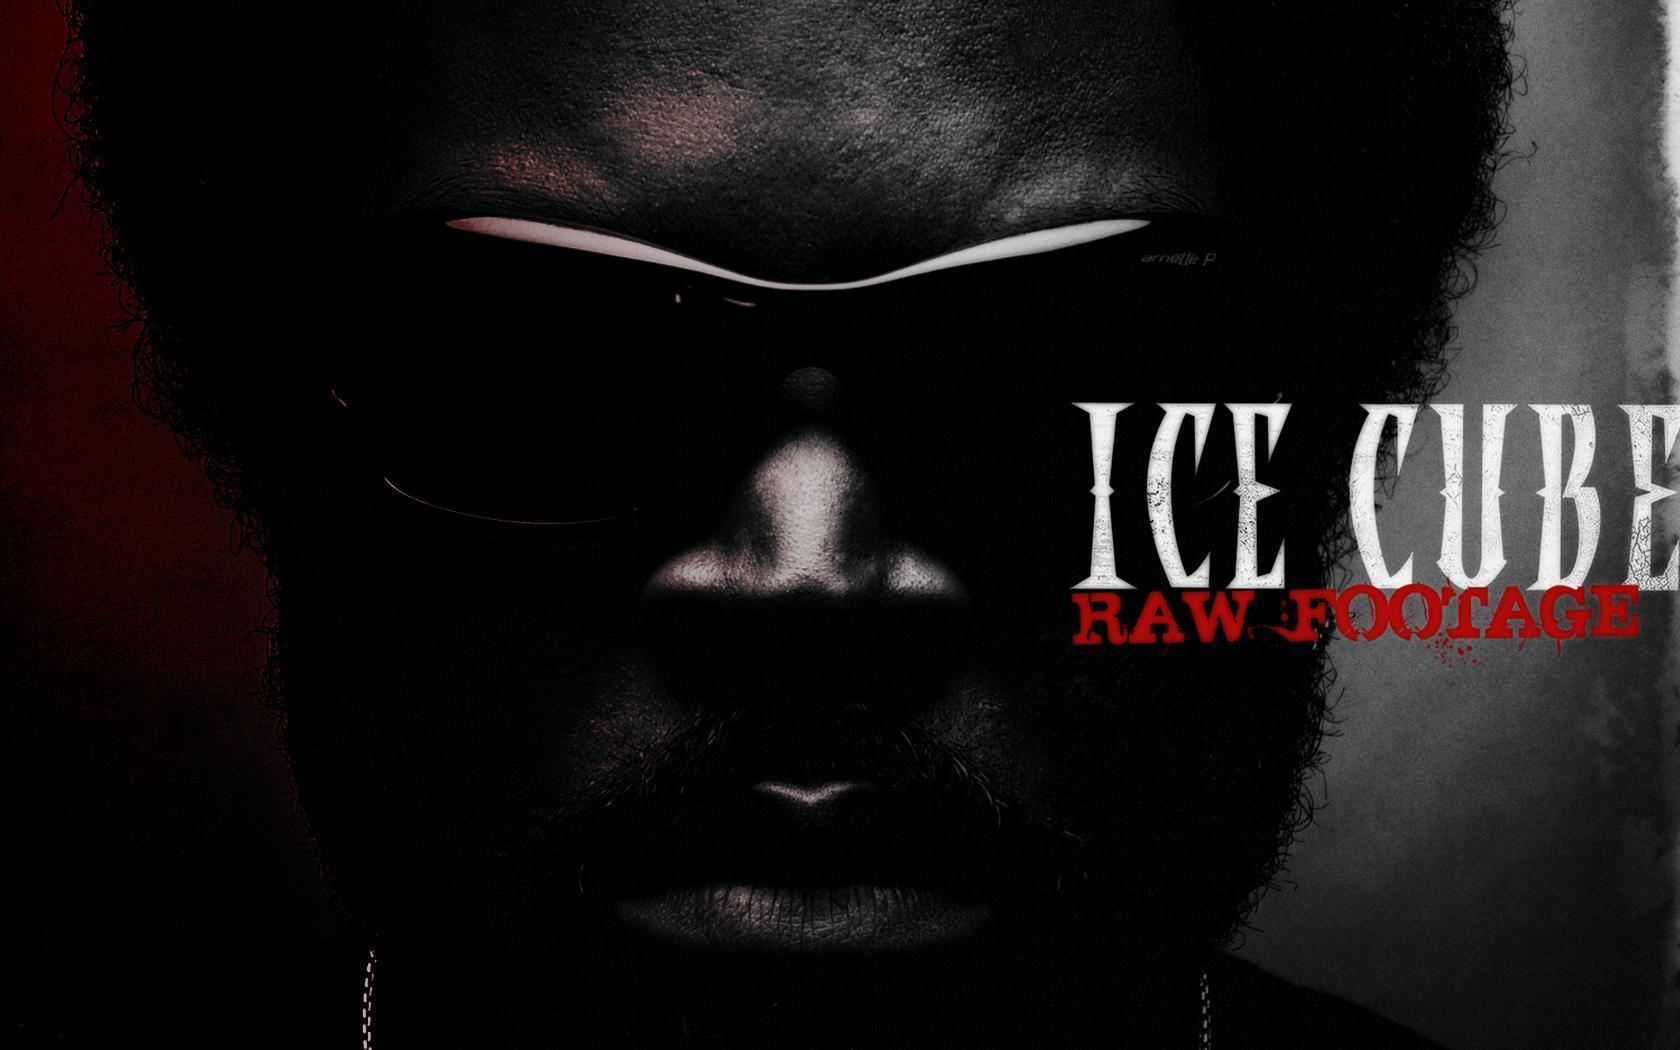 Ice Cube Raw Footage Wallpaper by TheIronLion on DeviantArt